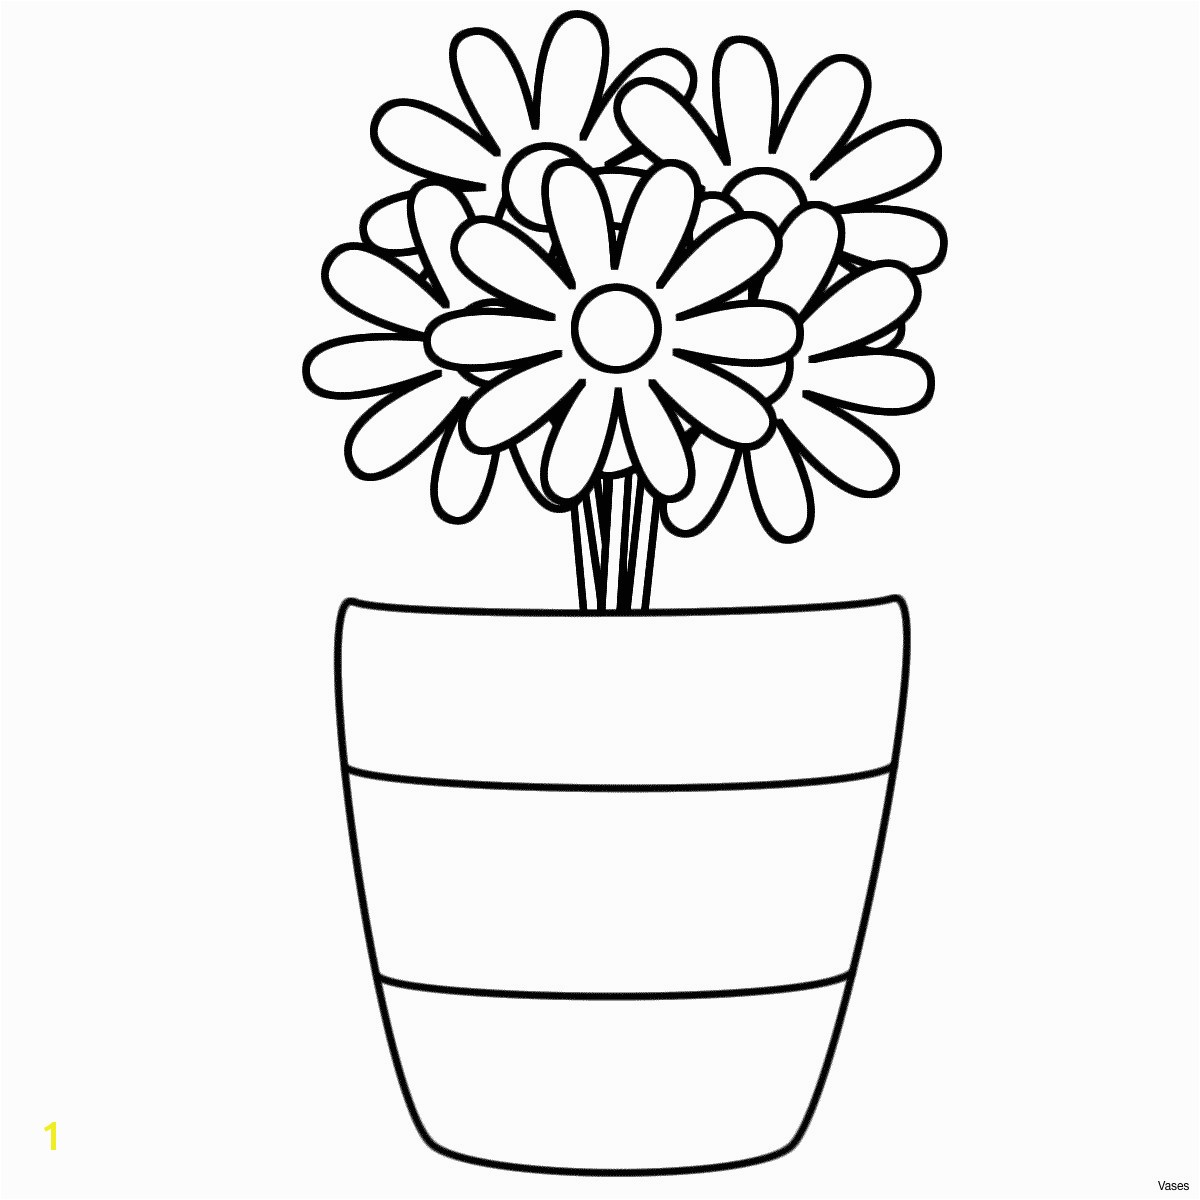 Flower Coloring Pages Printable for Adults New Cool Vases Flower Vase Coloring Page Pages Flowers In